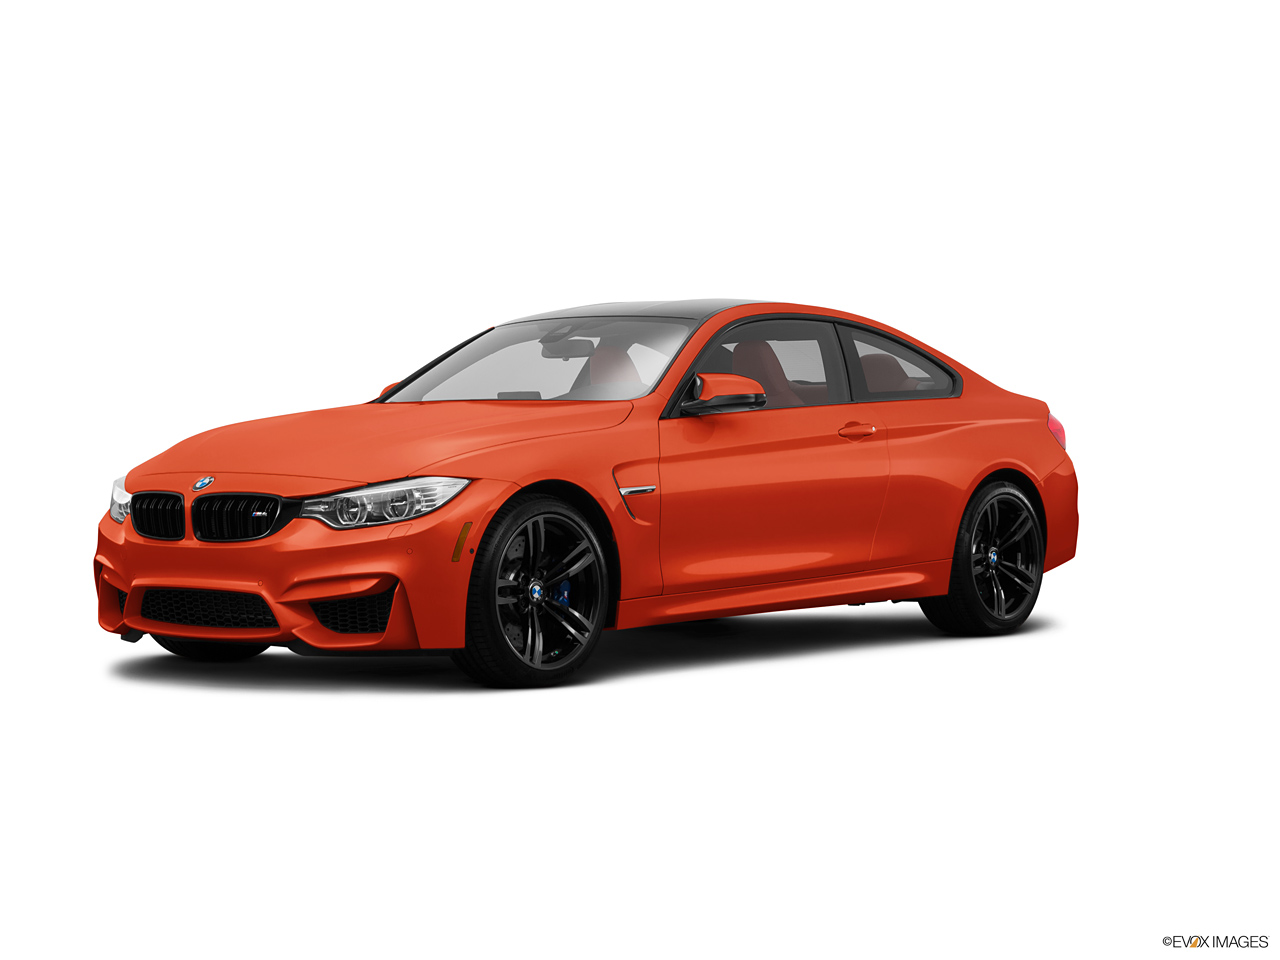 Bmw M4 Coupe 2016 3 0t In Saudi Arabia New Car Prices Specs Reviews Amp Photos Yallamotor